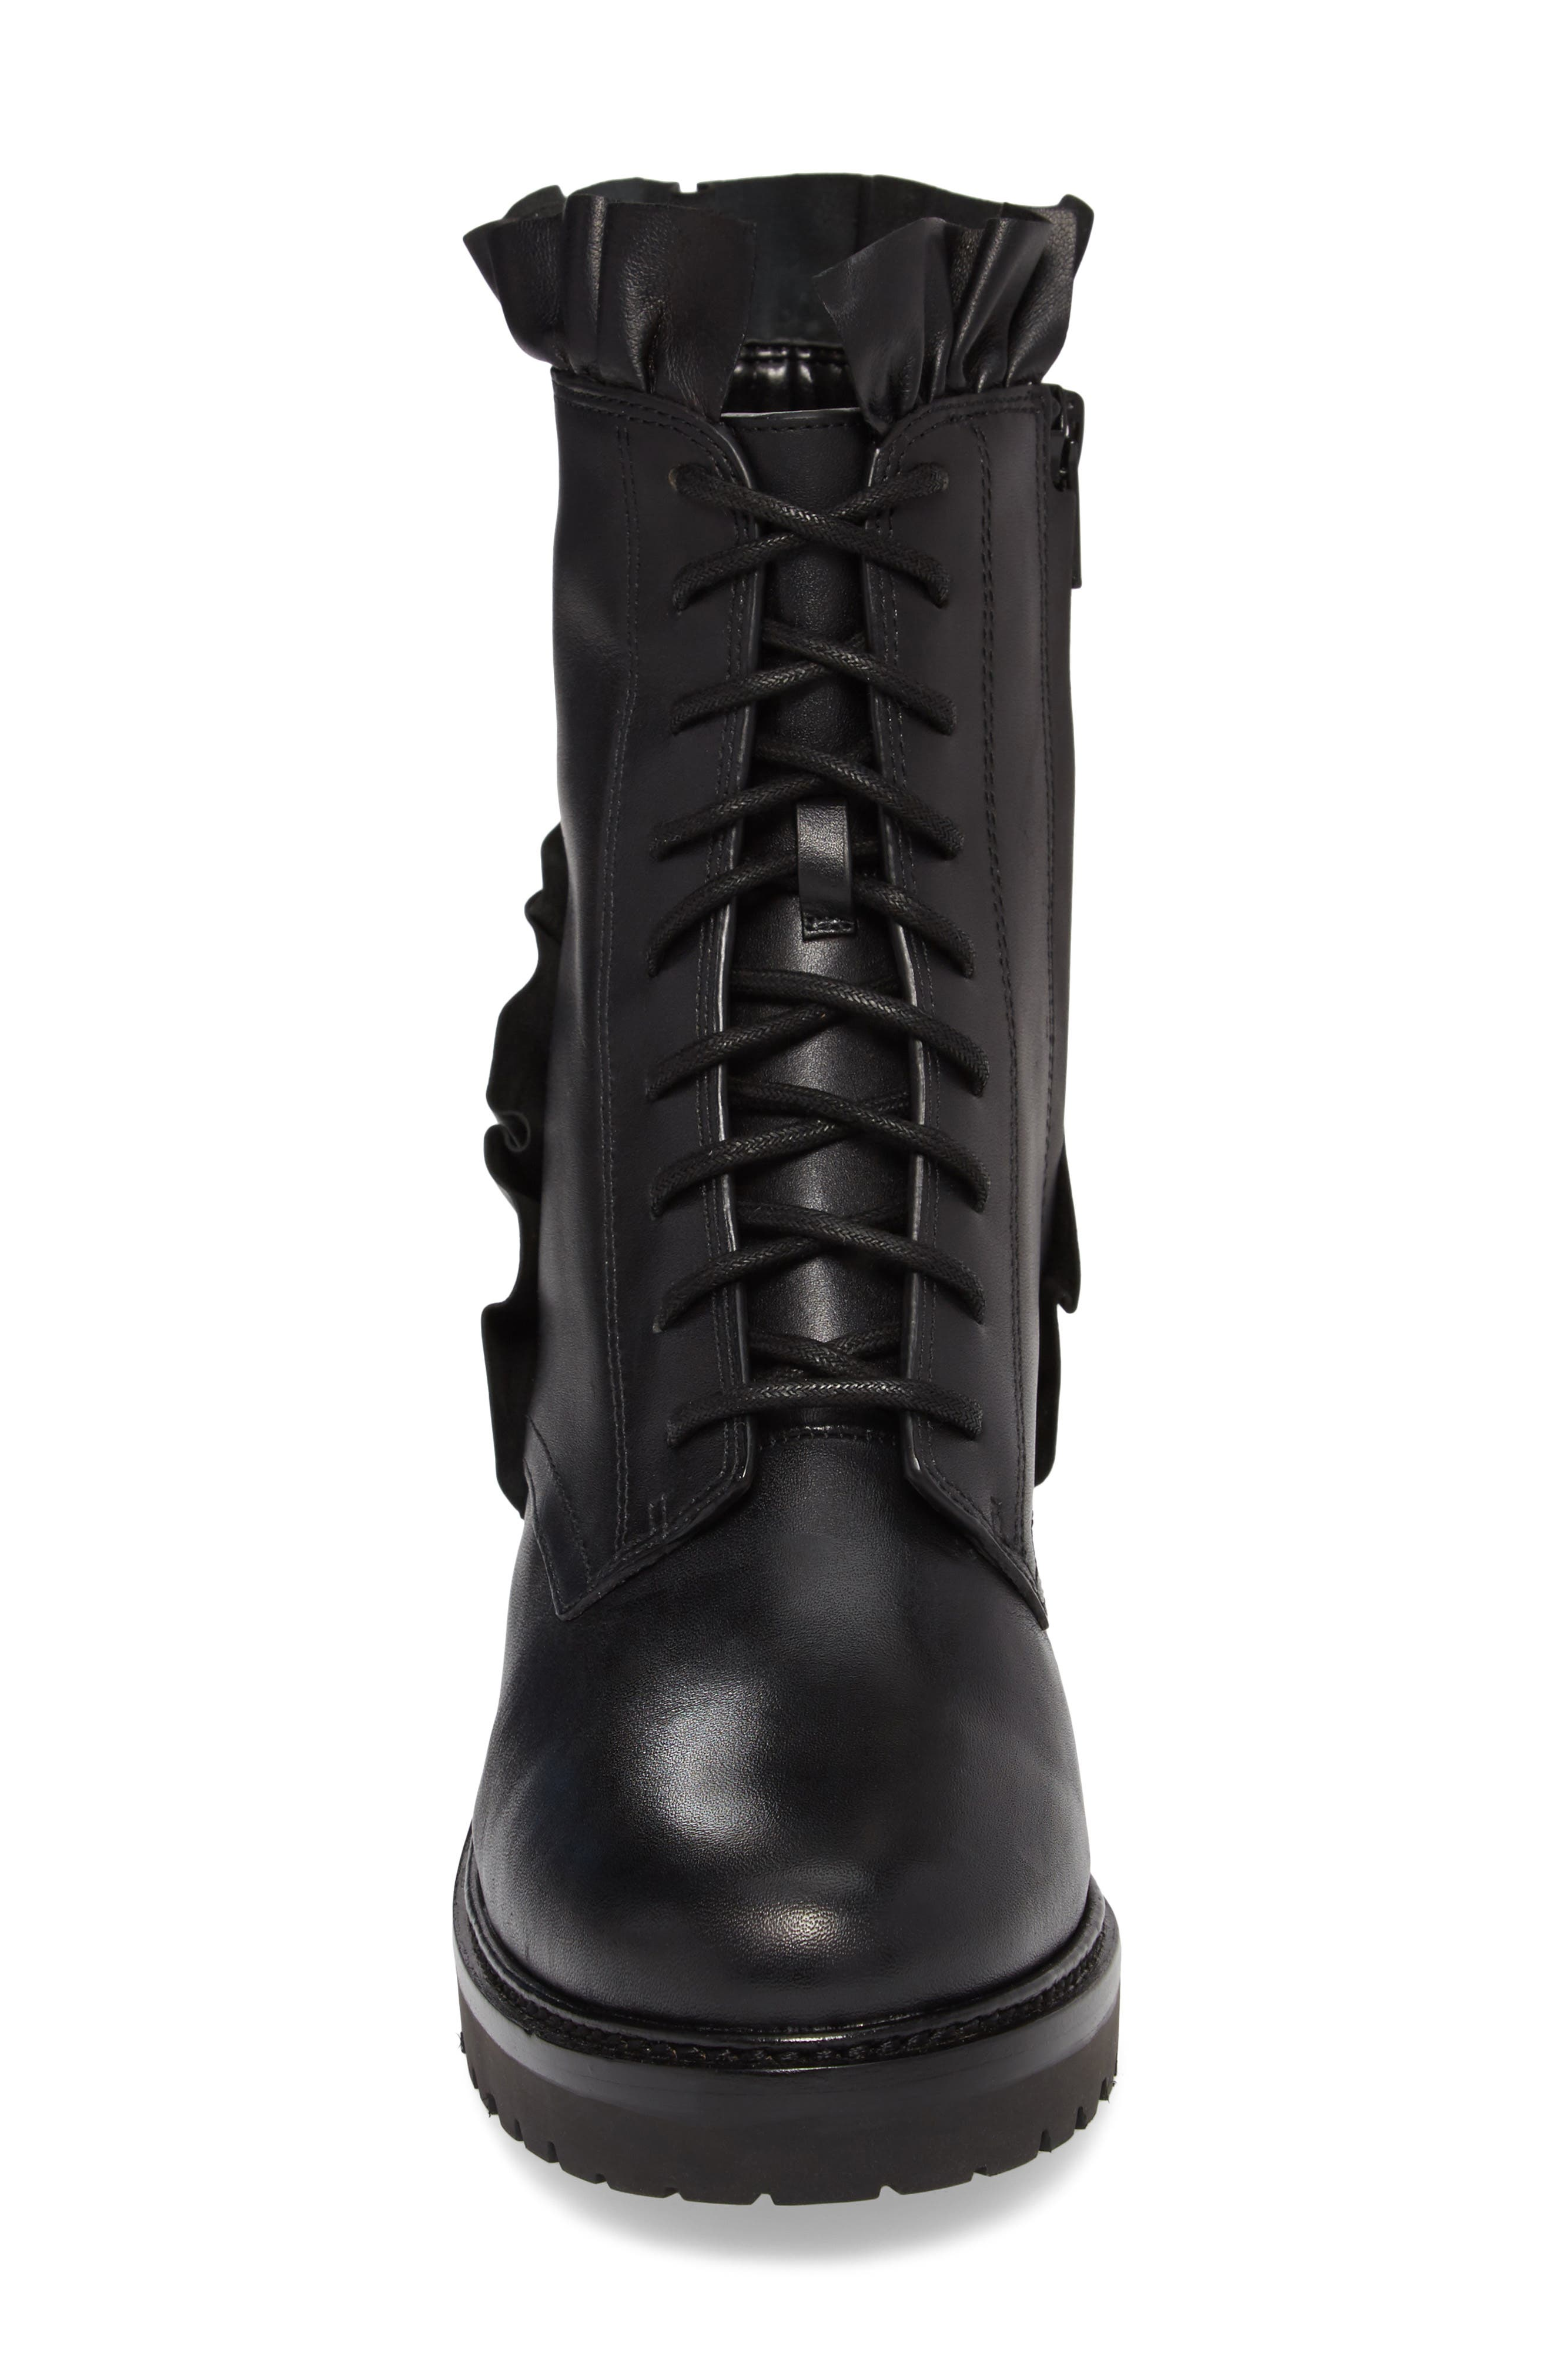 Bella Boot,                             Alternate thumbnail 4, color,                             Black Nappa Leather